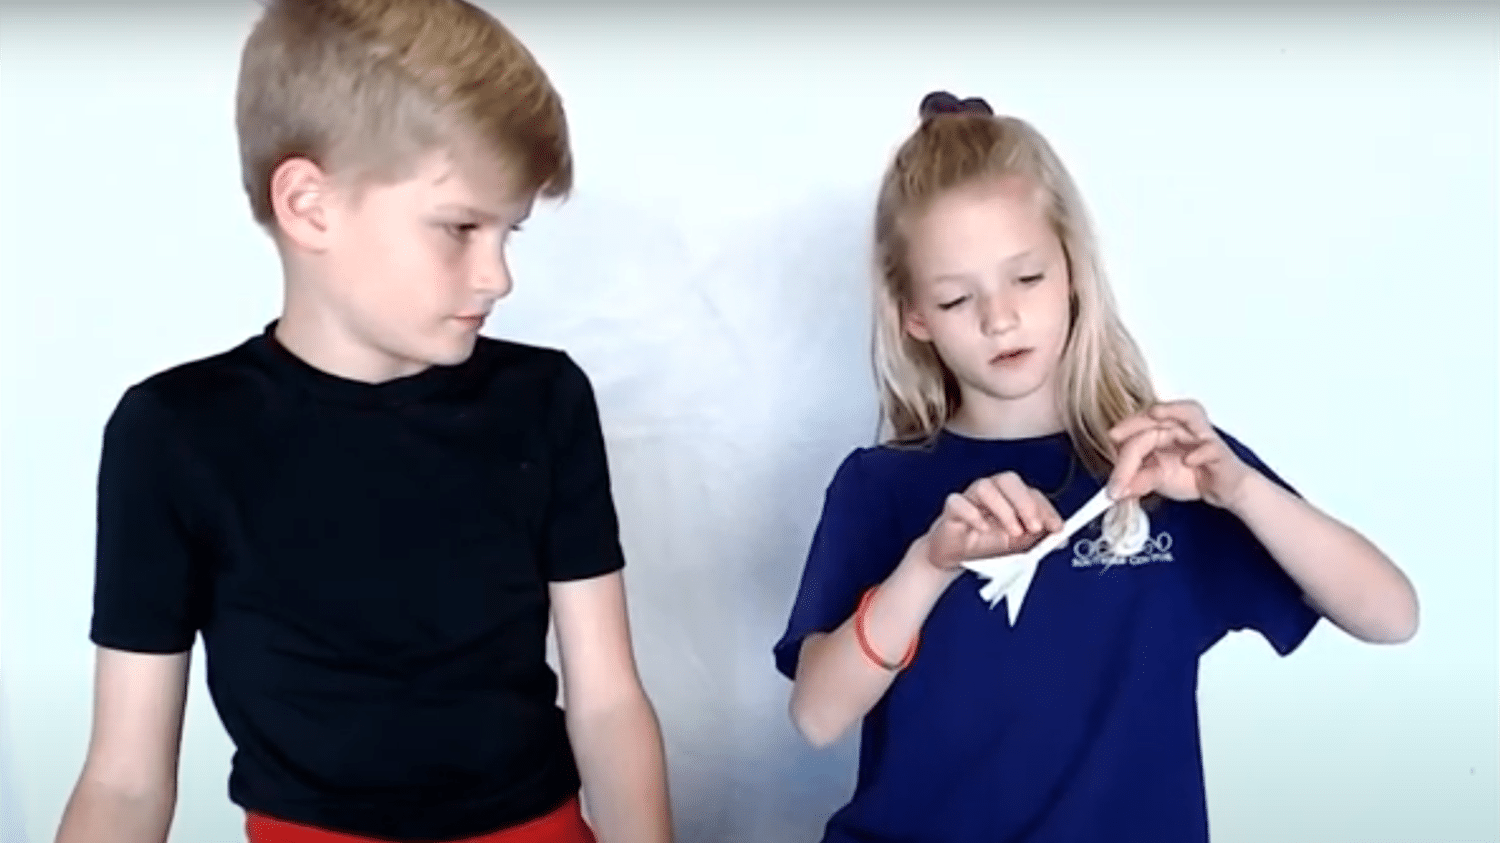 Two kids work on building a straw rocket